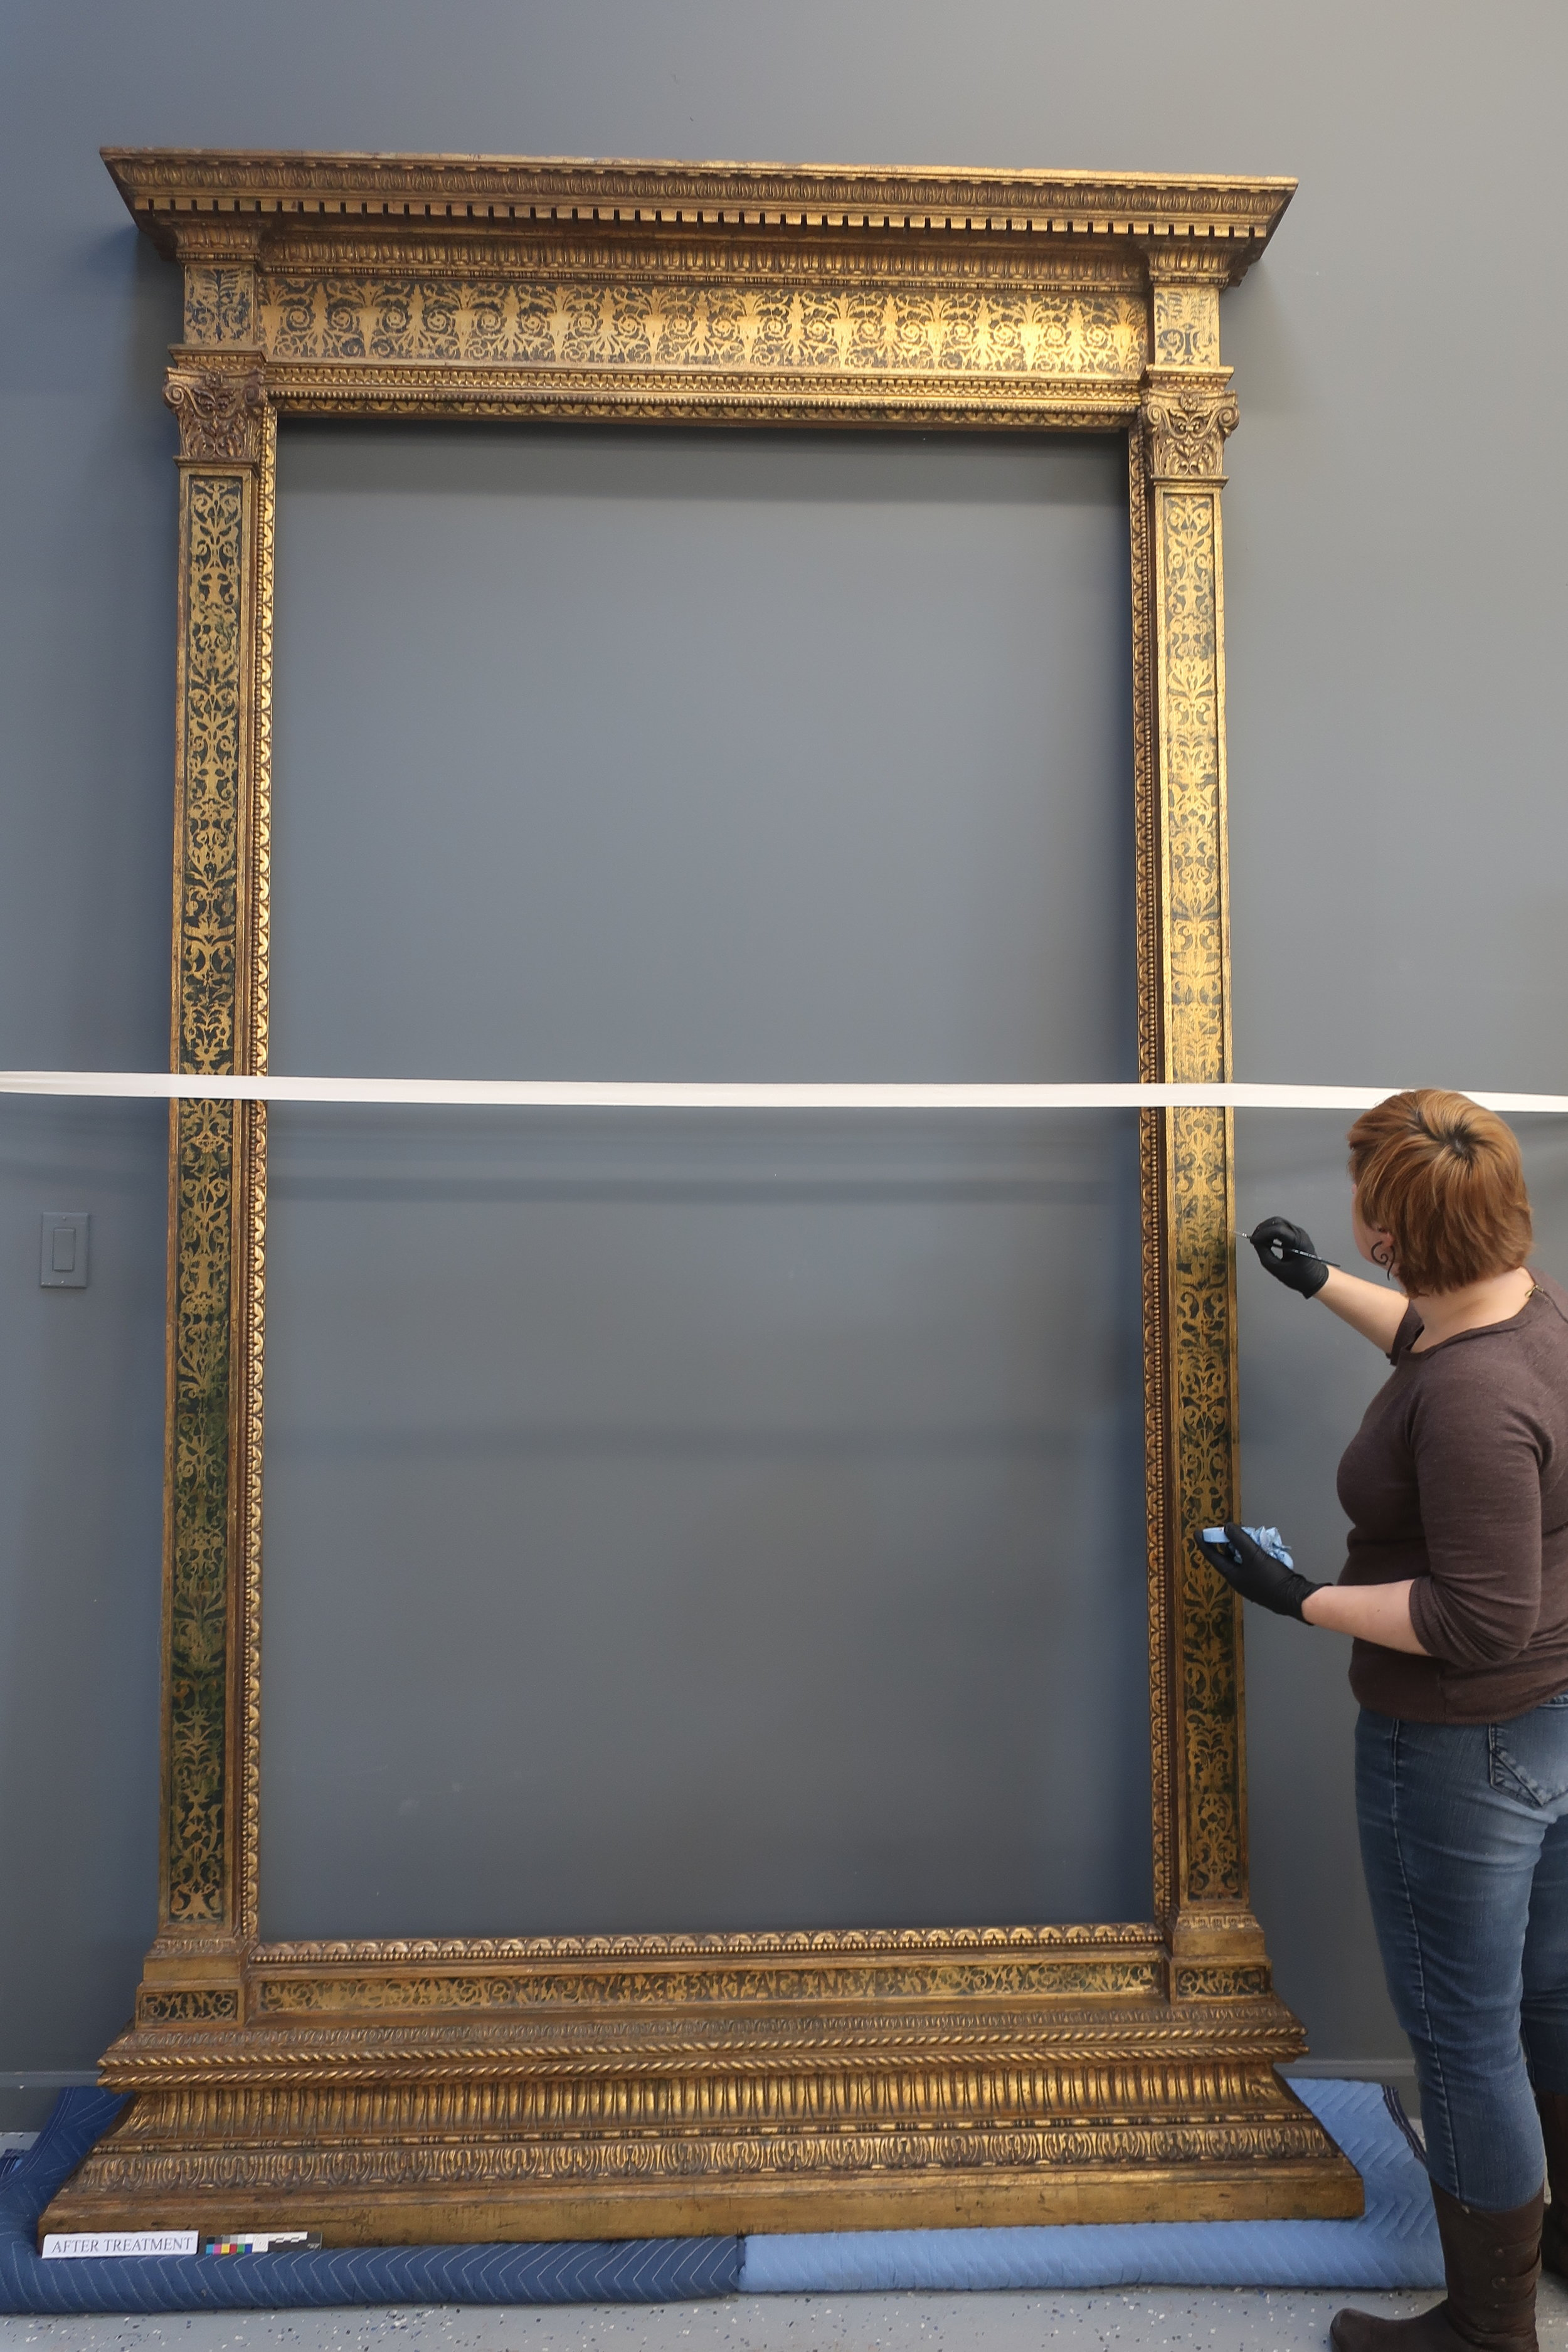 High Ceilings and walls painted gray provide a neutral background for photographing large pieces. Pictured here is the ornate gilded frame that accompanied the painting to the left.